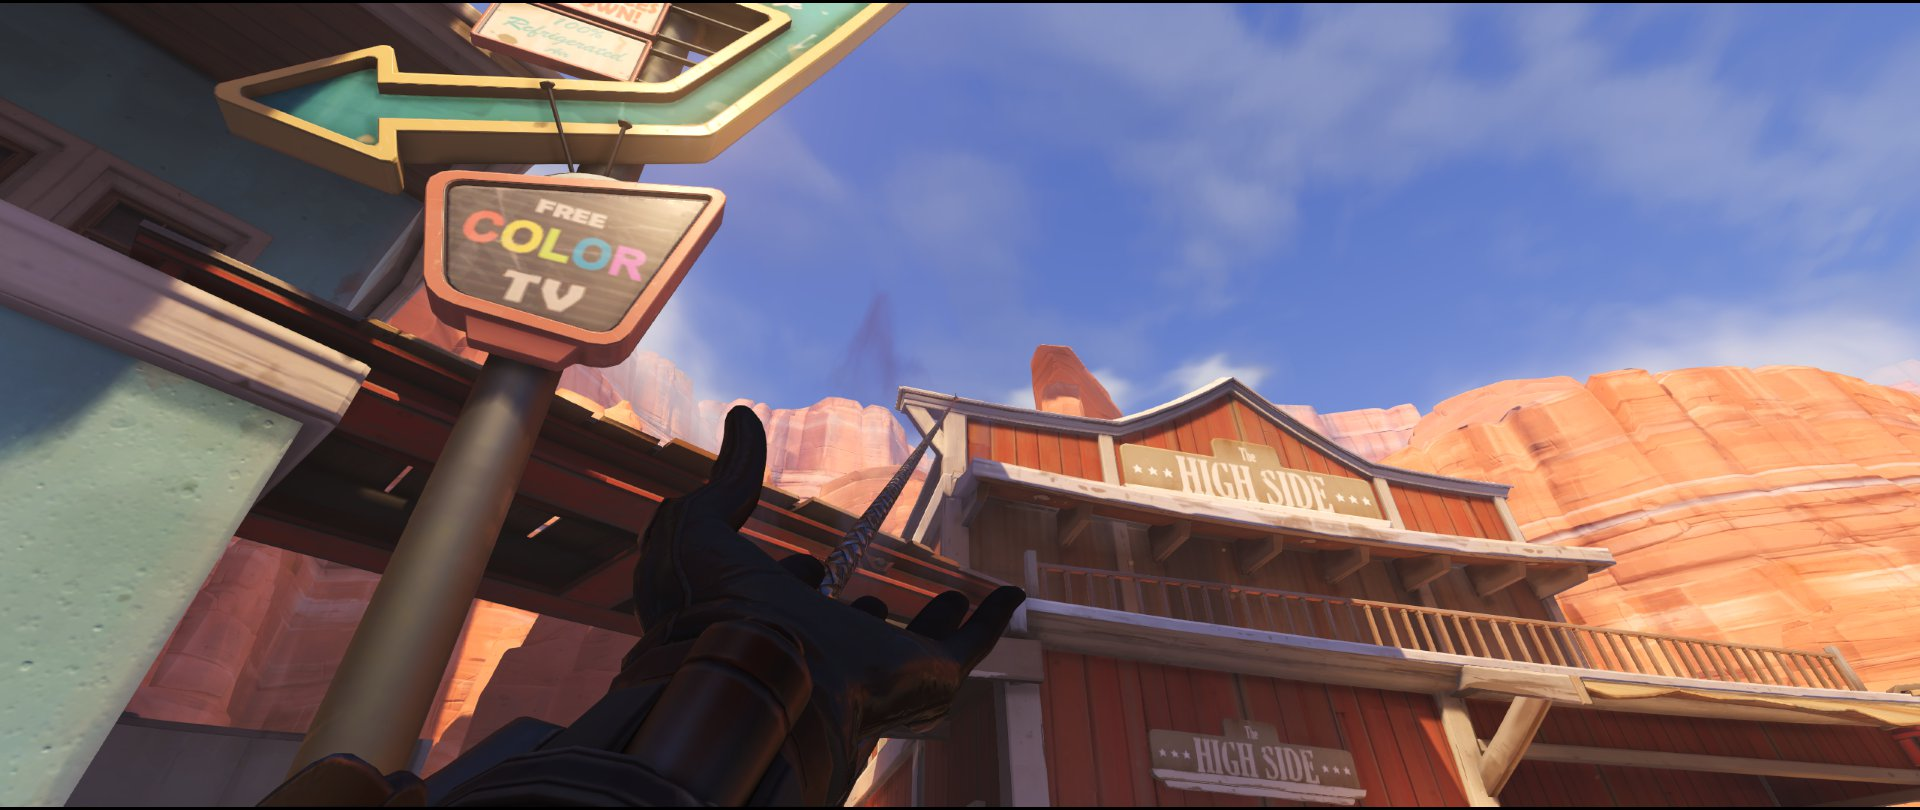 To Pub attack sniping spot Widowmaker Route 66.jpg